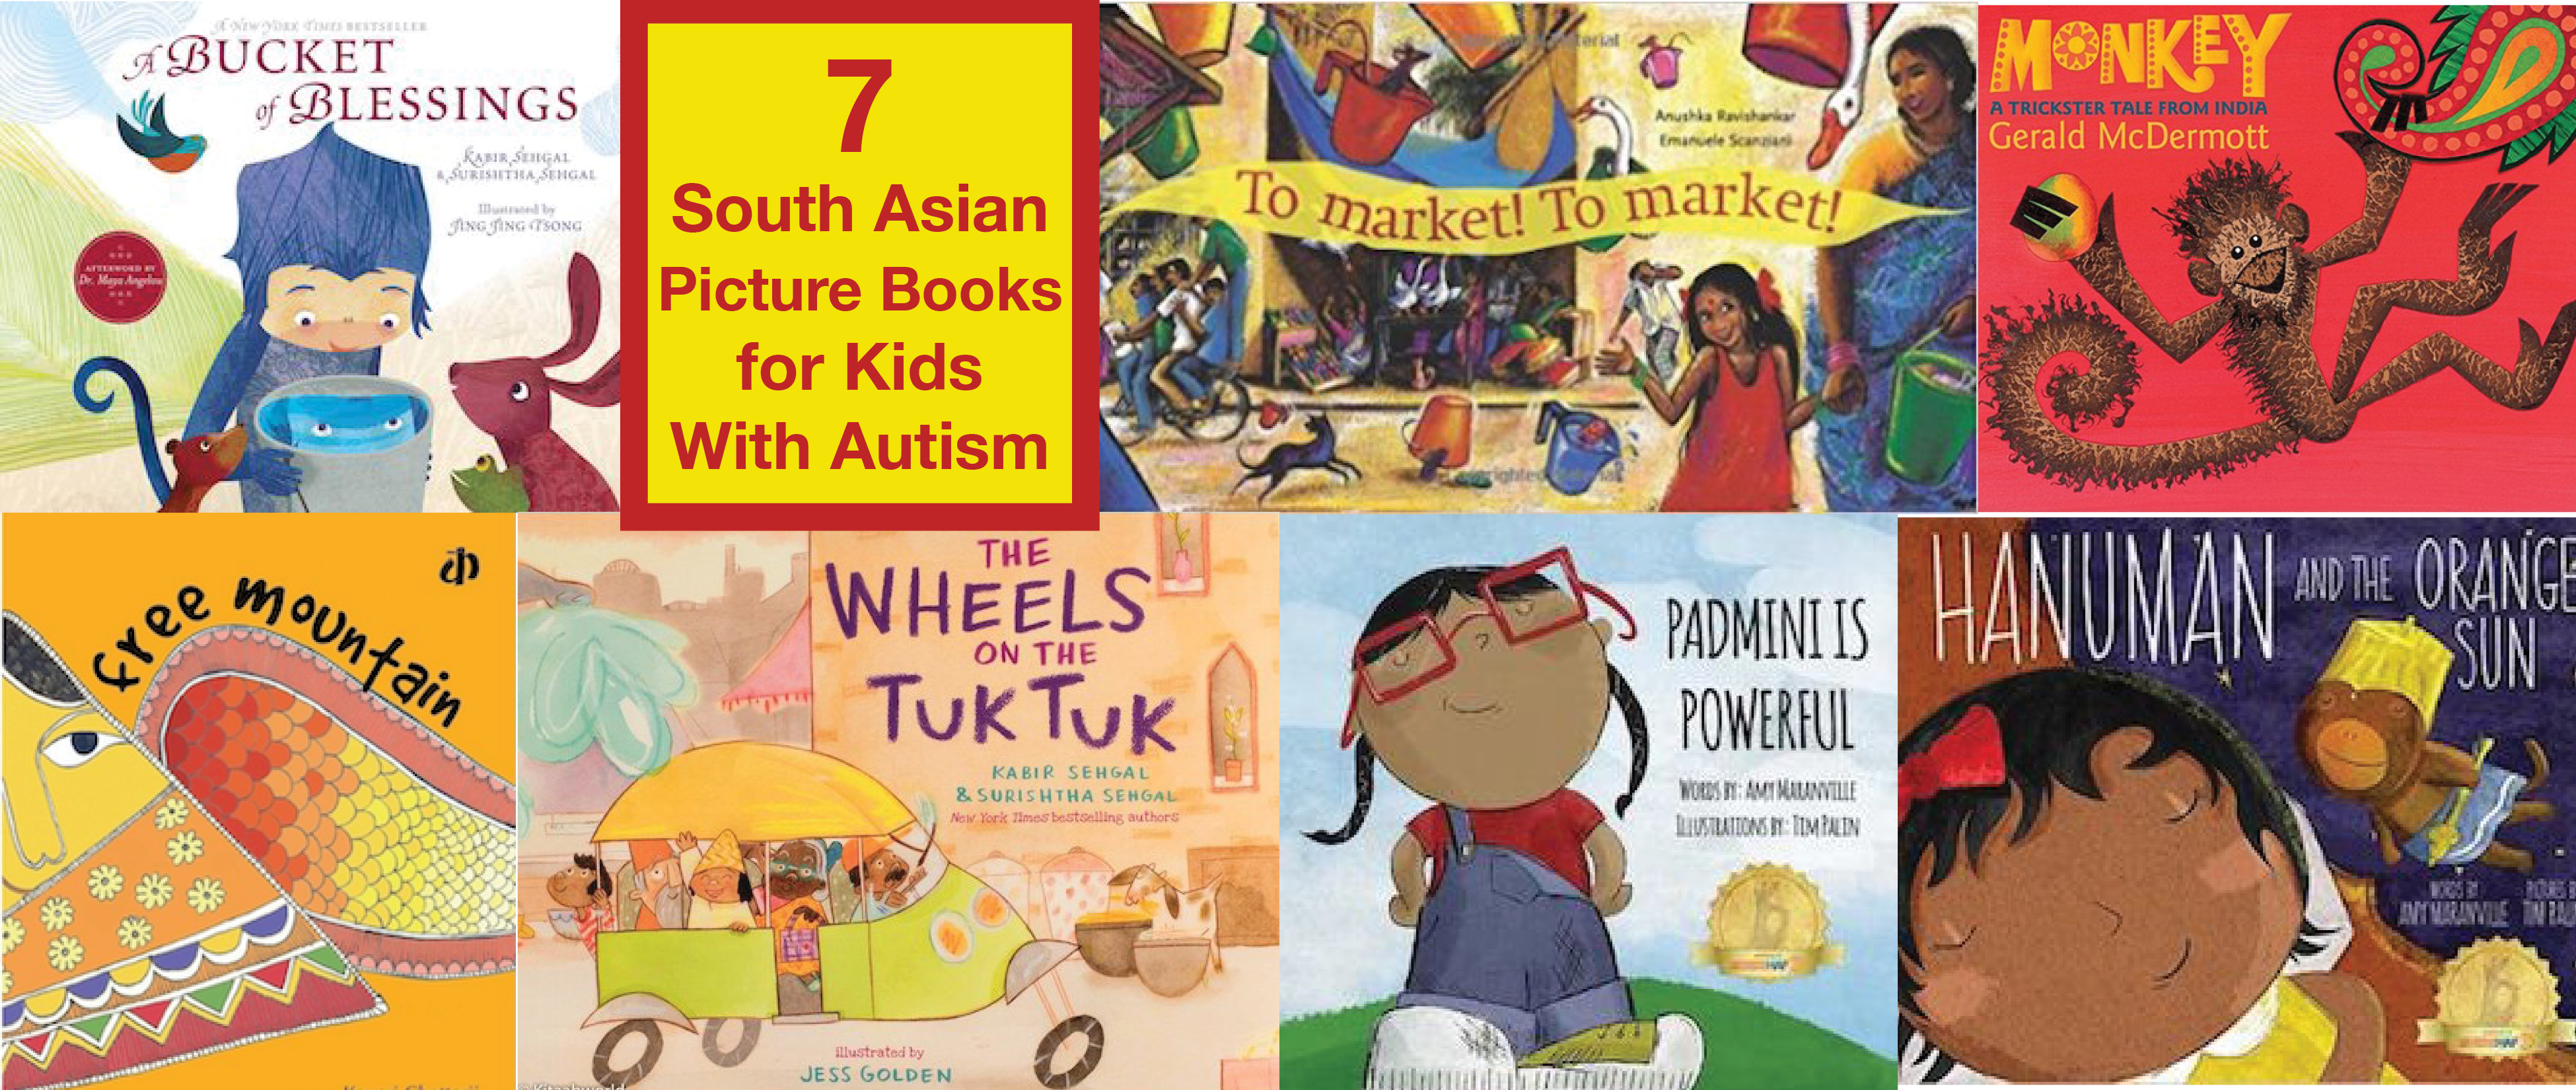 7 South Asian Picture Books for Kids with Autism